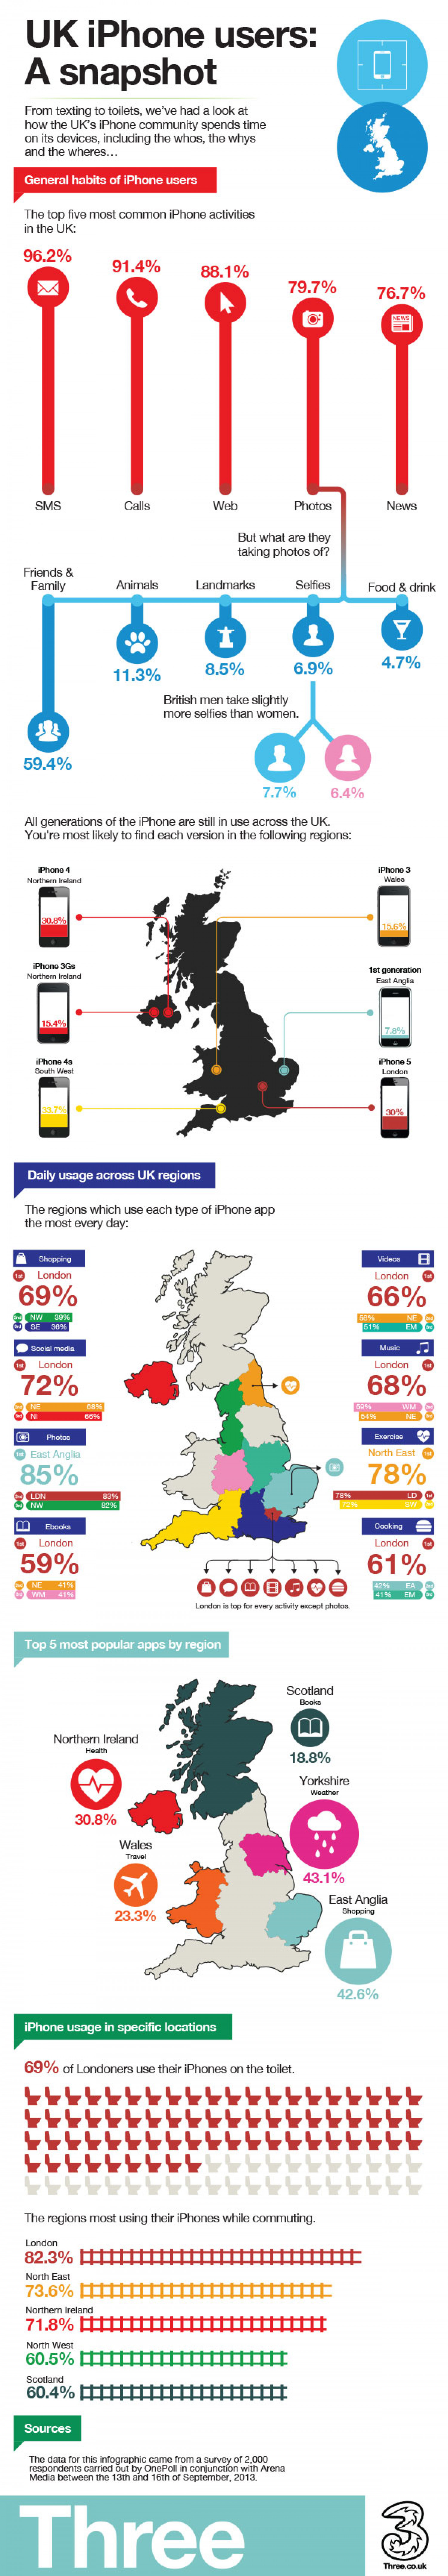 An interesting snapshot of iPhone usage in the UK Infographic